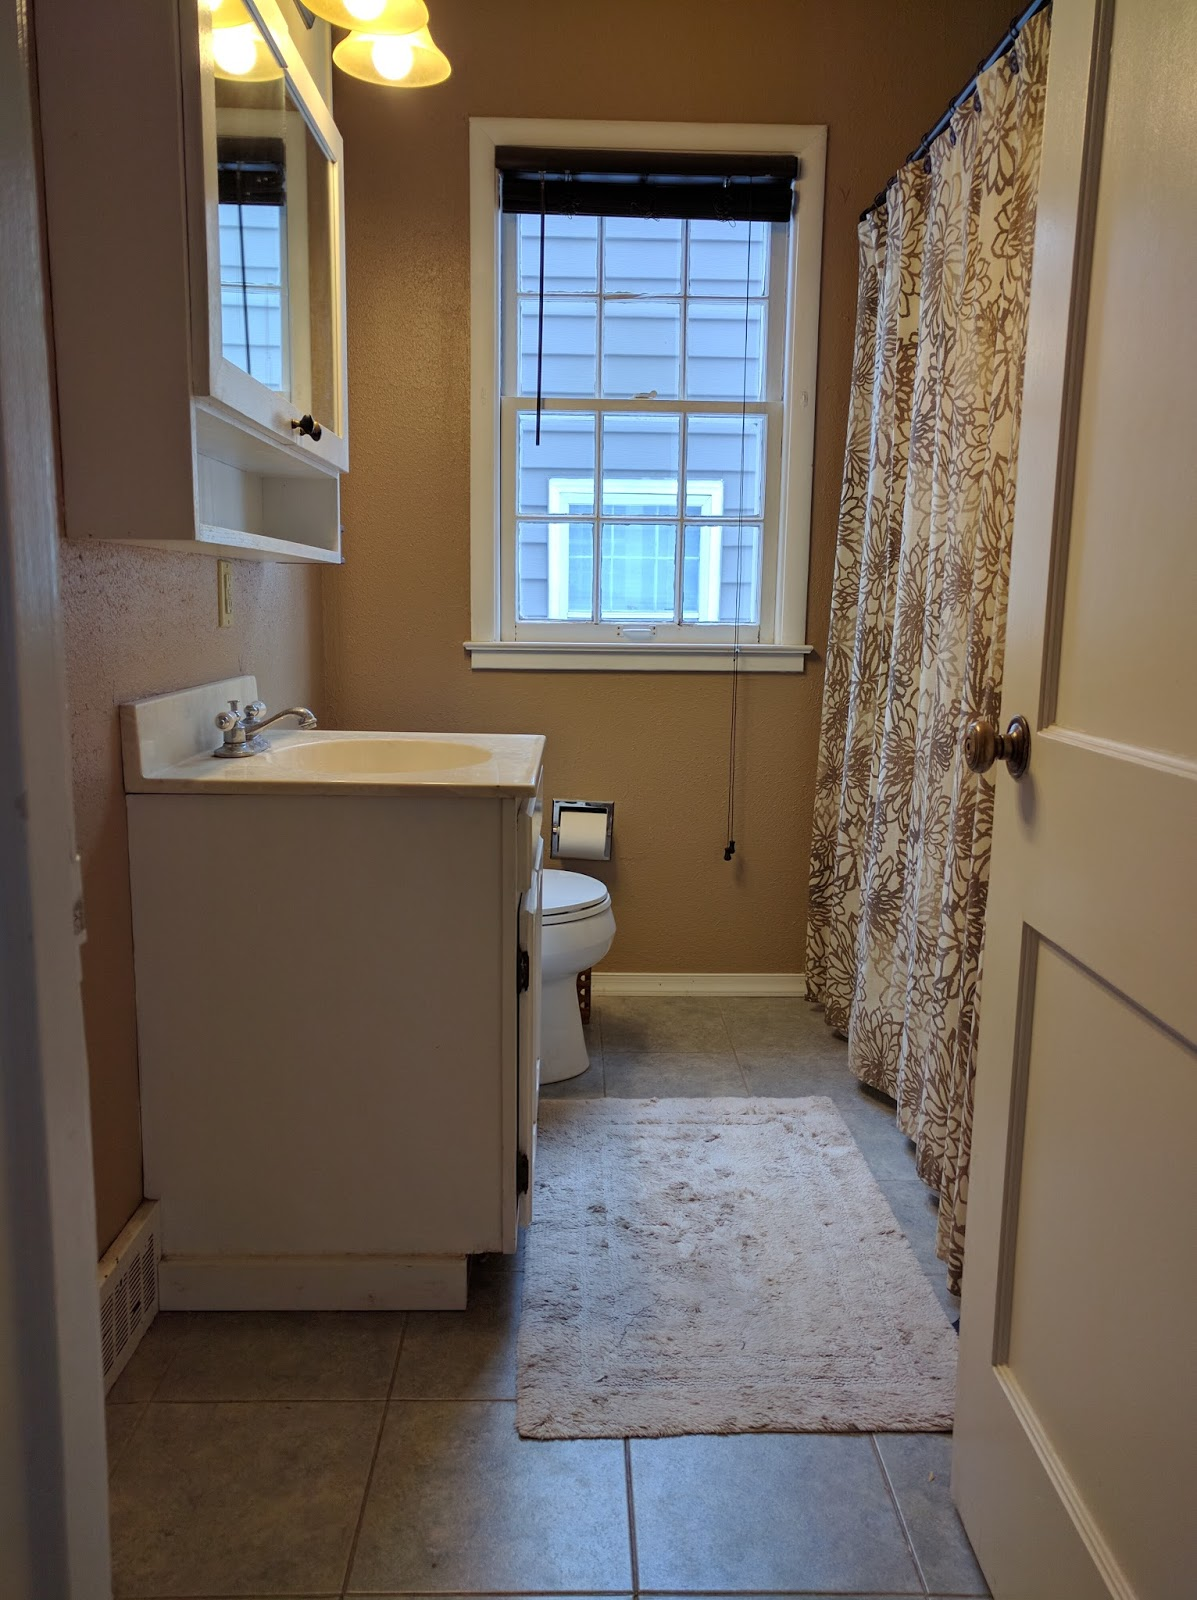 KRUSES WORKSHOP S Cottage Bathroom Remodel - How to remodel an old bathroom